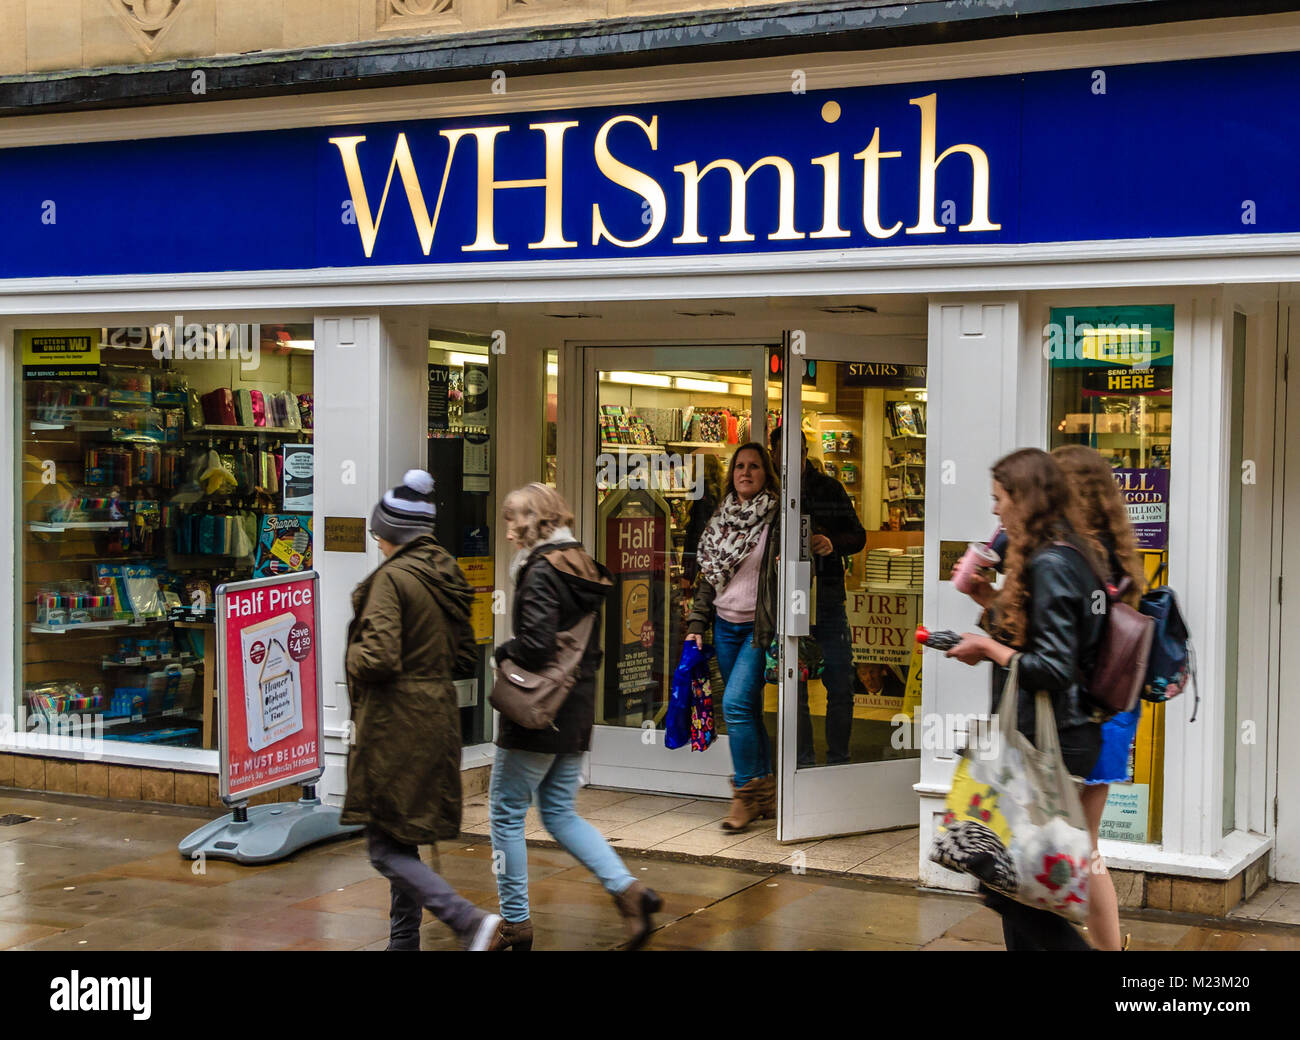 WHSmith newsagents shop front with people walking past on Cornmarket Street, Oxford, Oxfordshire, UK. Feb 2018 Stock Photo